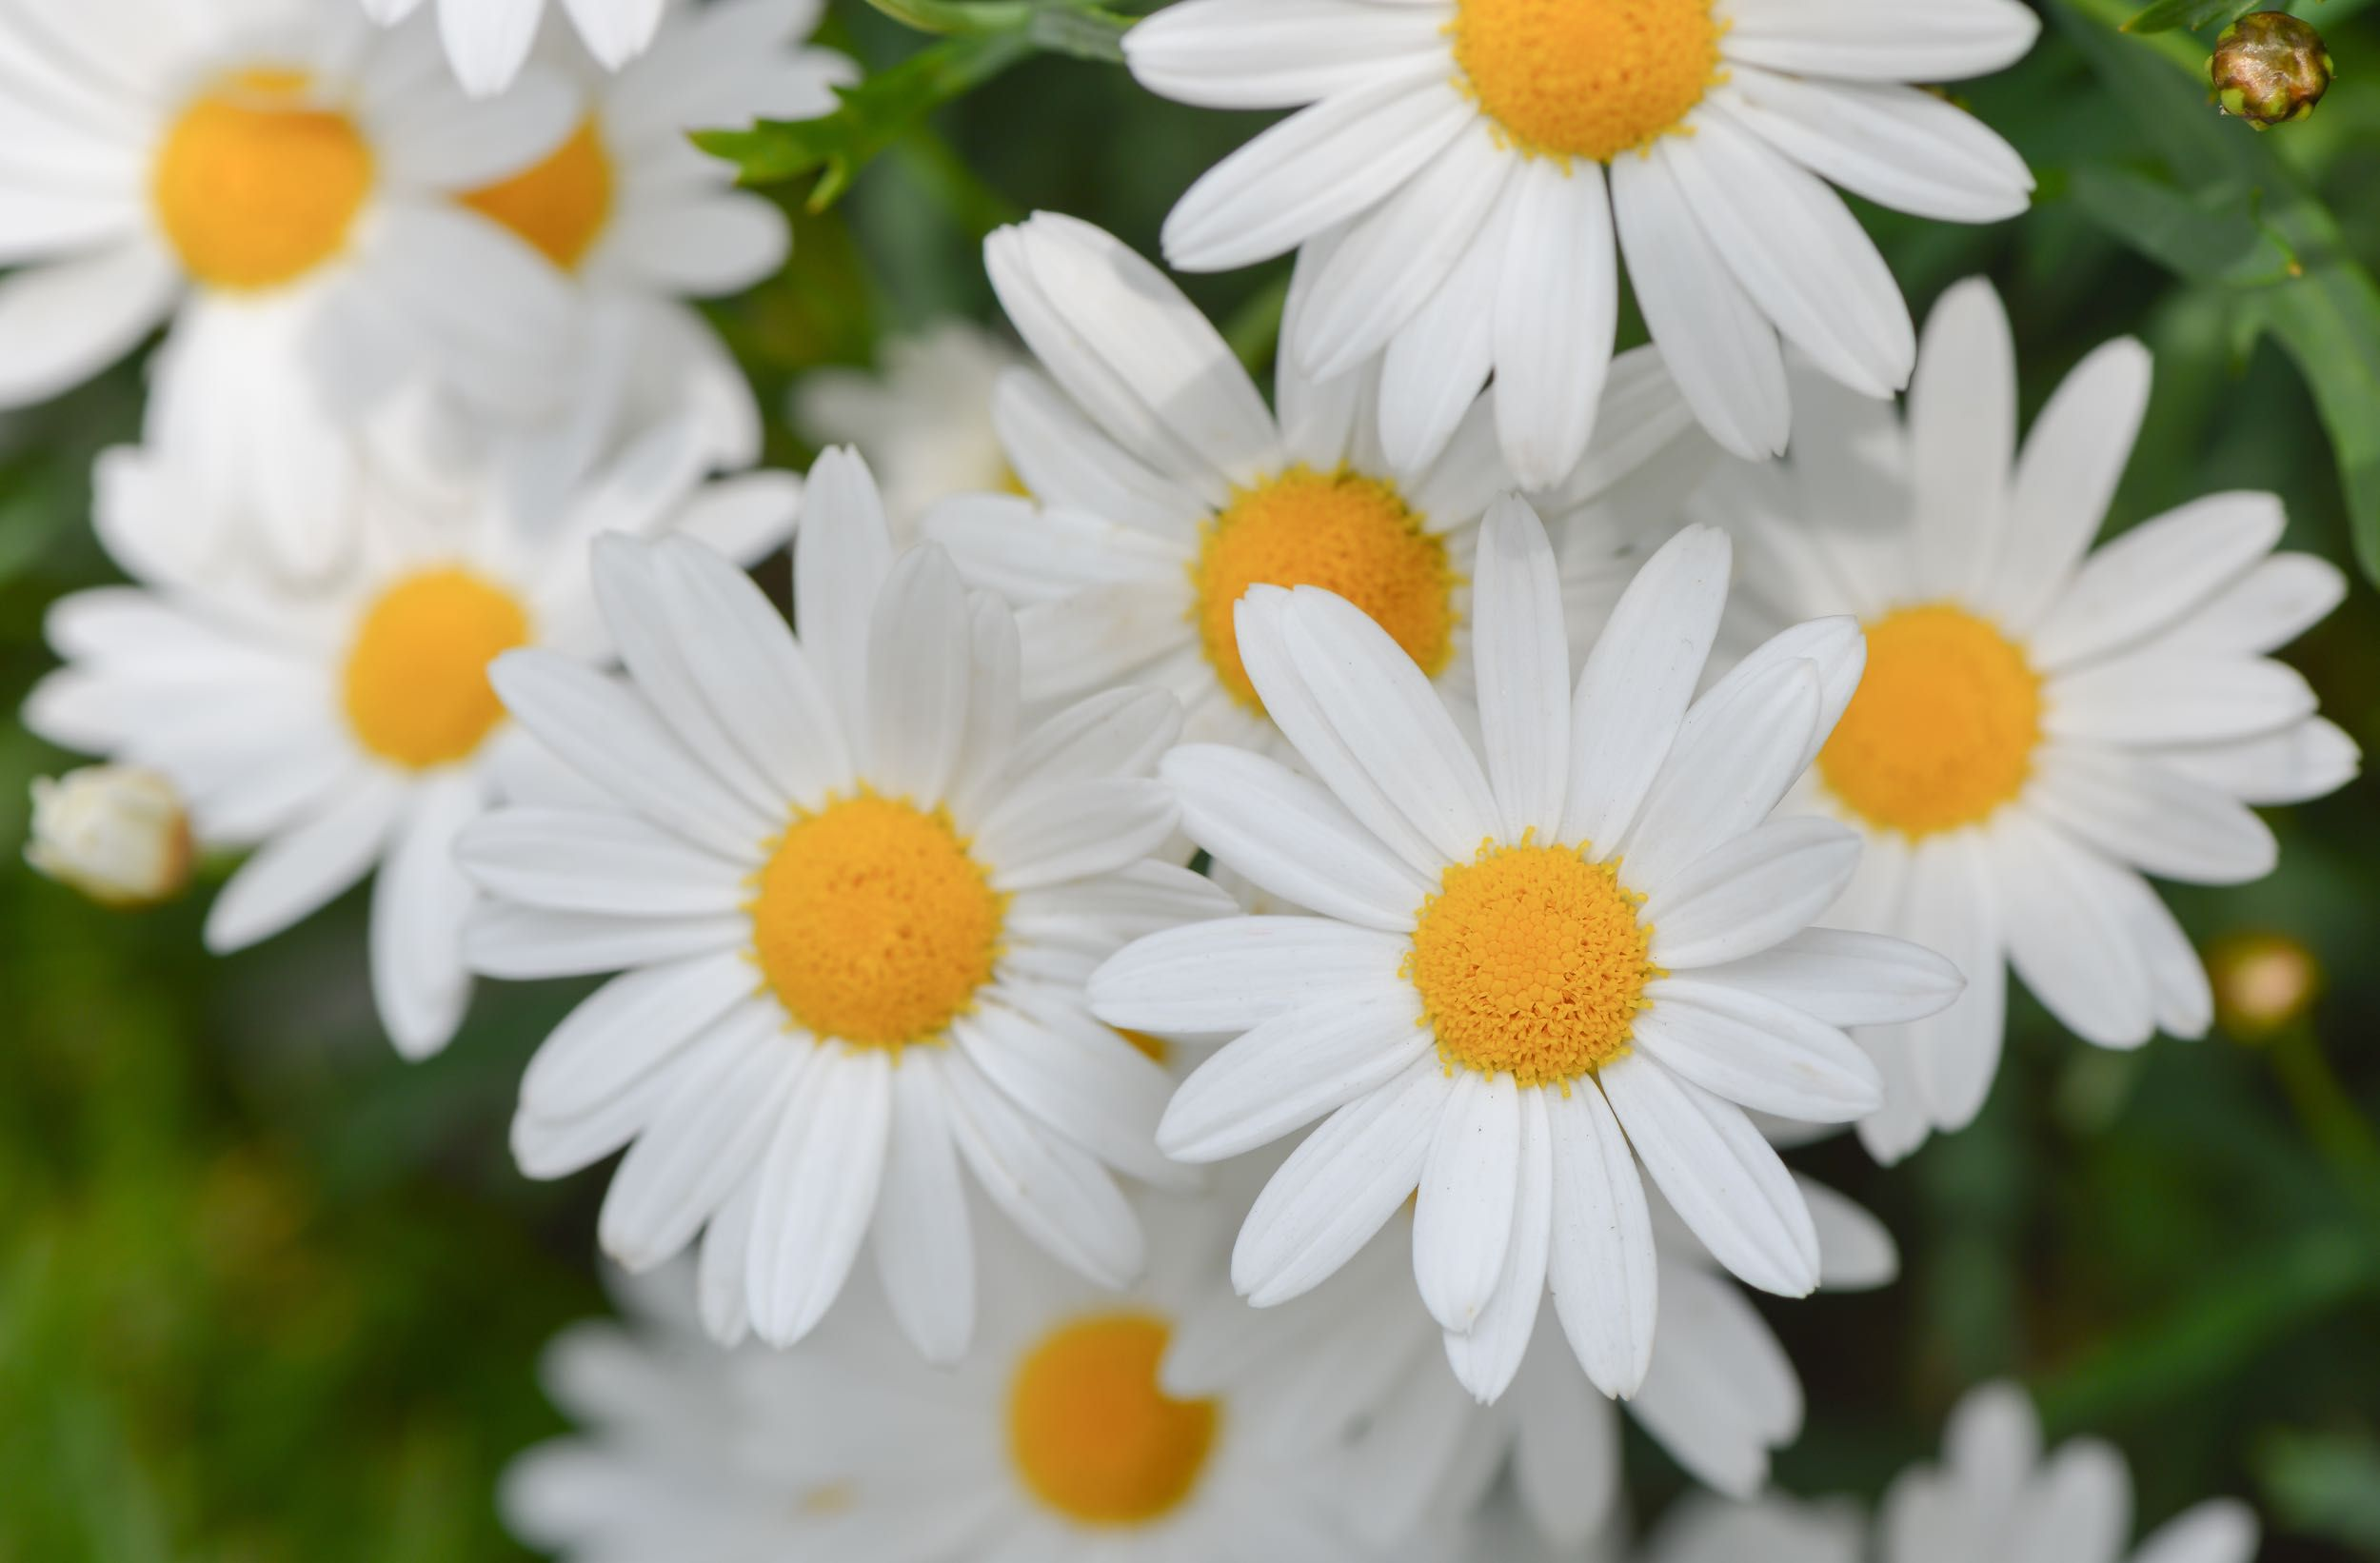 10 tips for landscaping on the cheap double down on perennials these 10 tips for landscaping on the cheap double down on perennials these are many plants that come back year after year instead of buying annuals and replacing izmirmasajfo